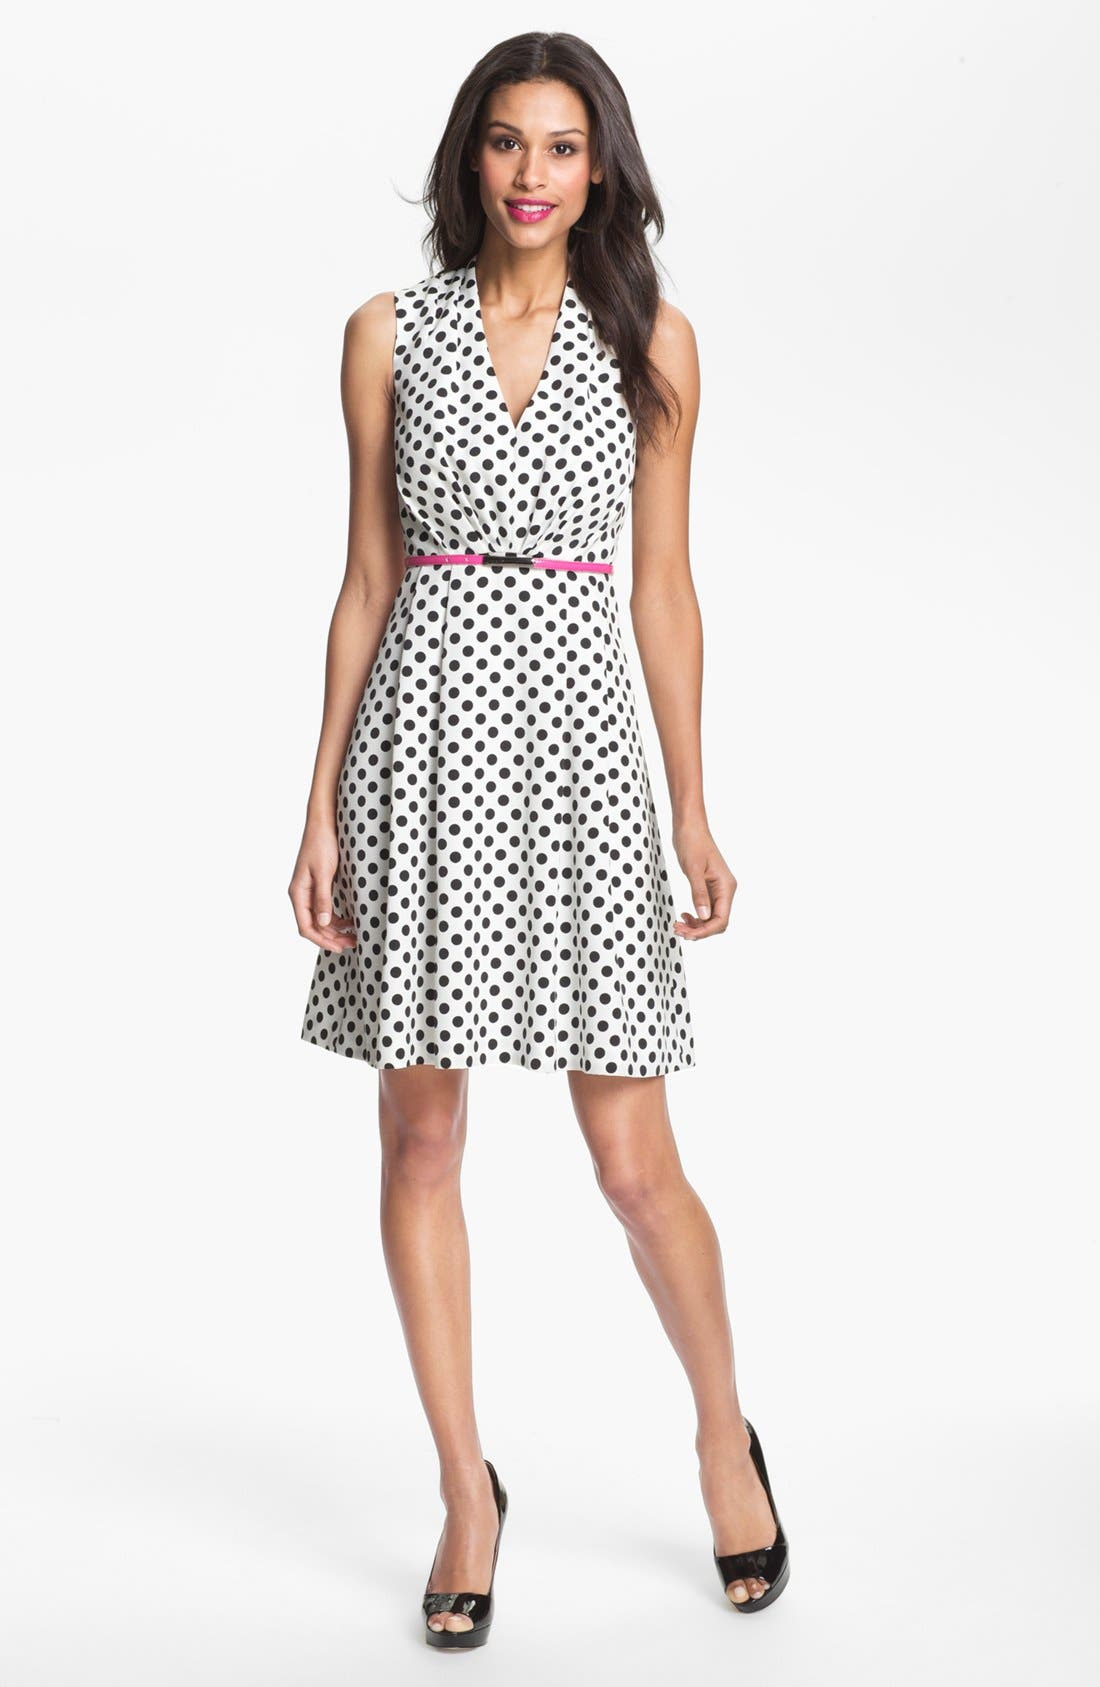 Main Image - Adrianna Papell Polka Dot Fit & Flare Dress (Petite)